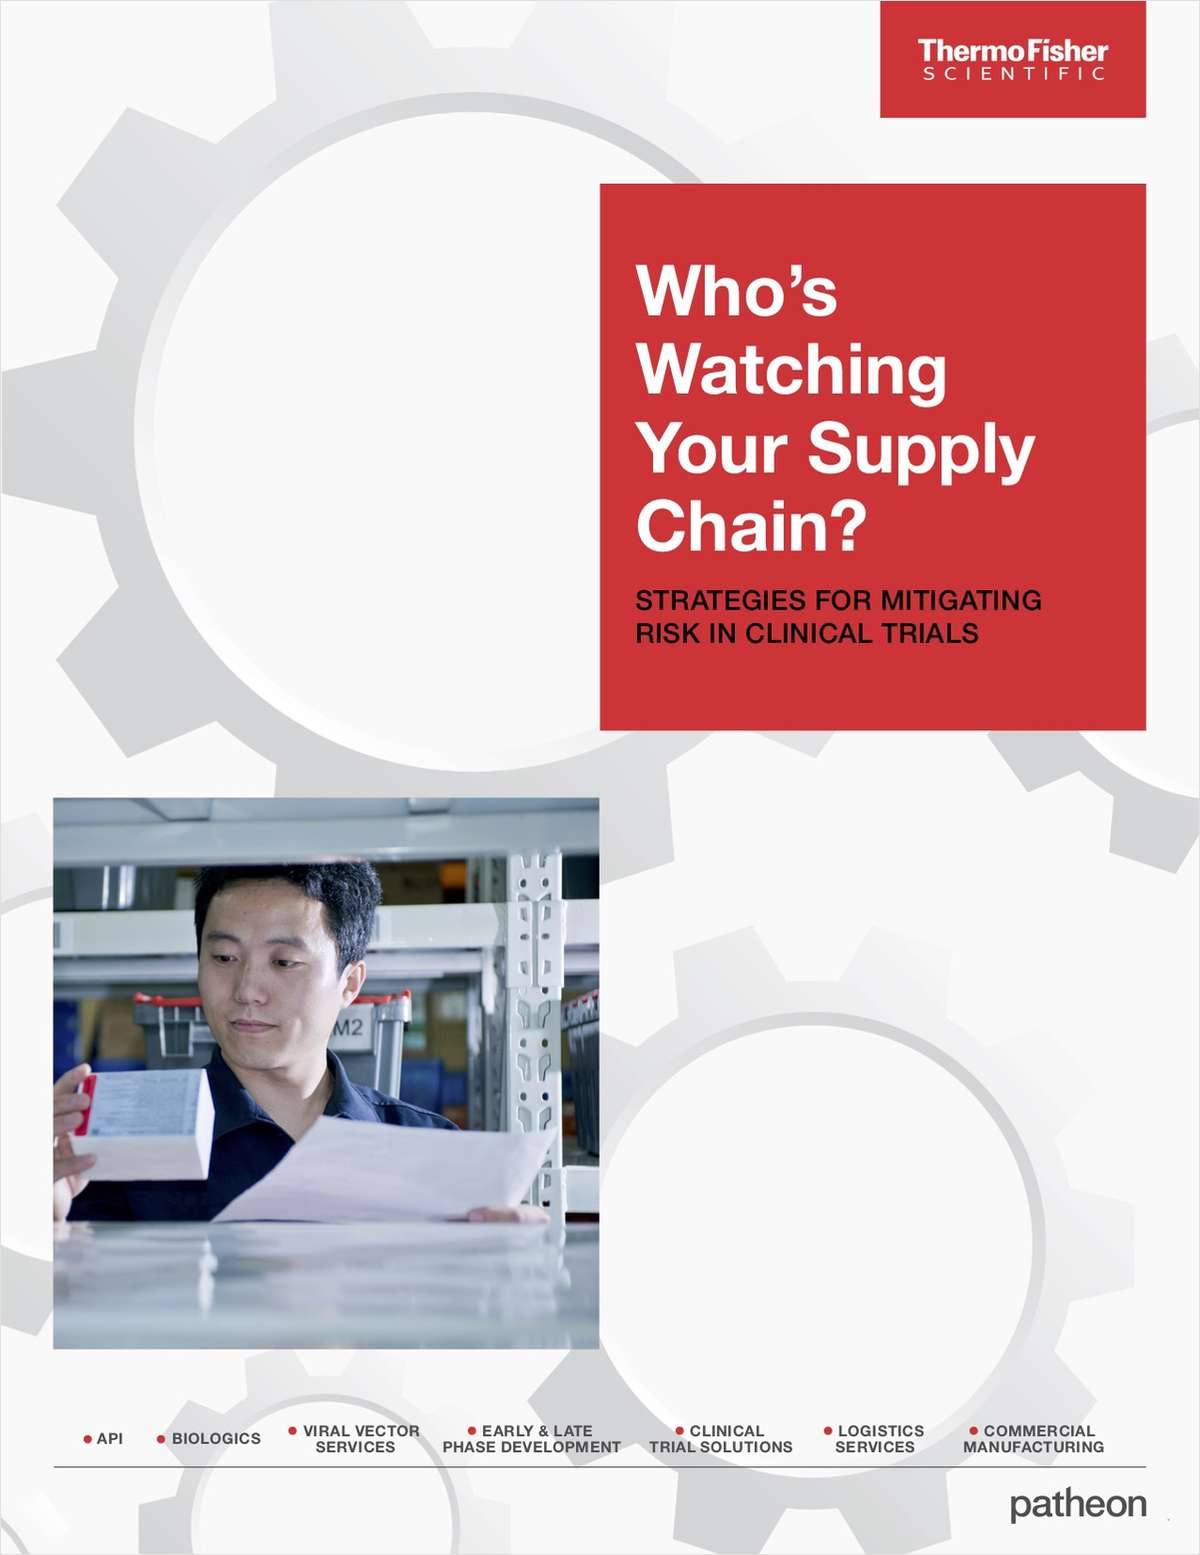 Strategies for mitigating supply chain risk in clinical trials